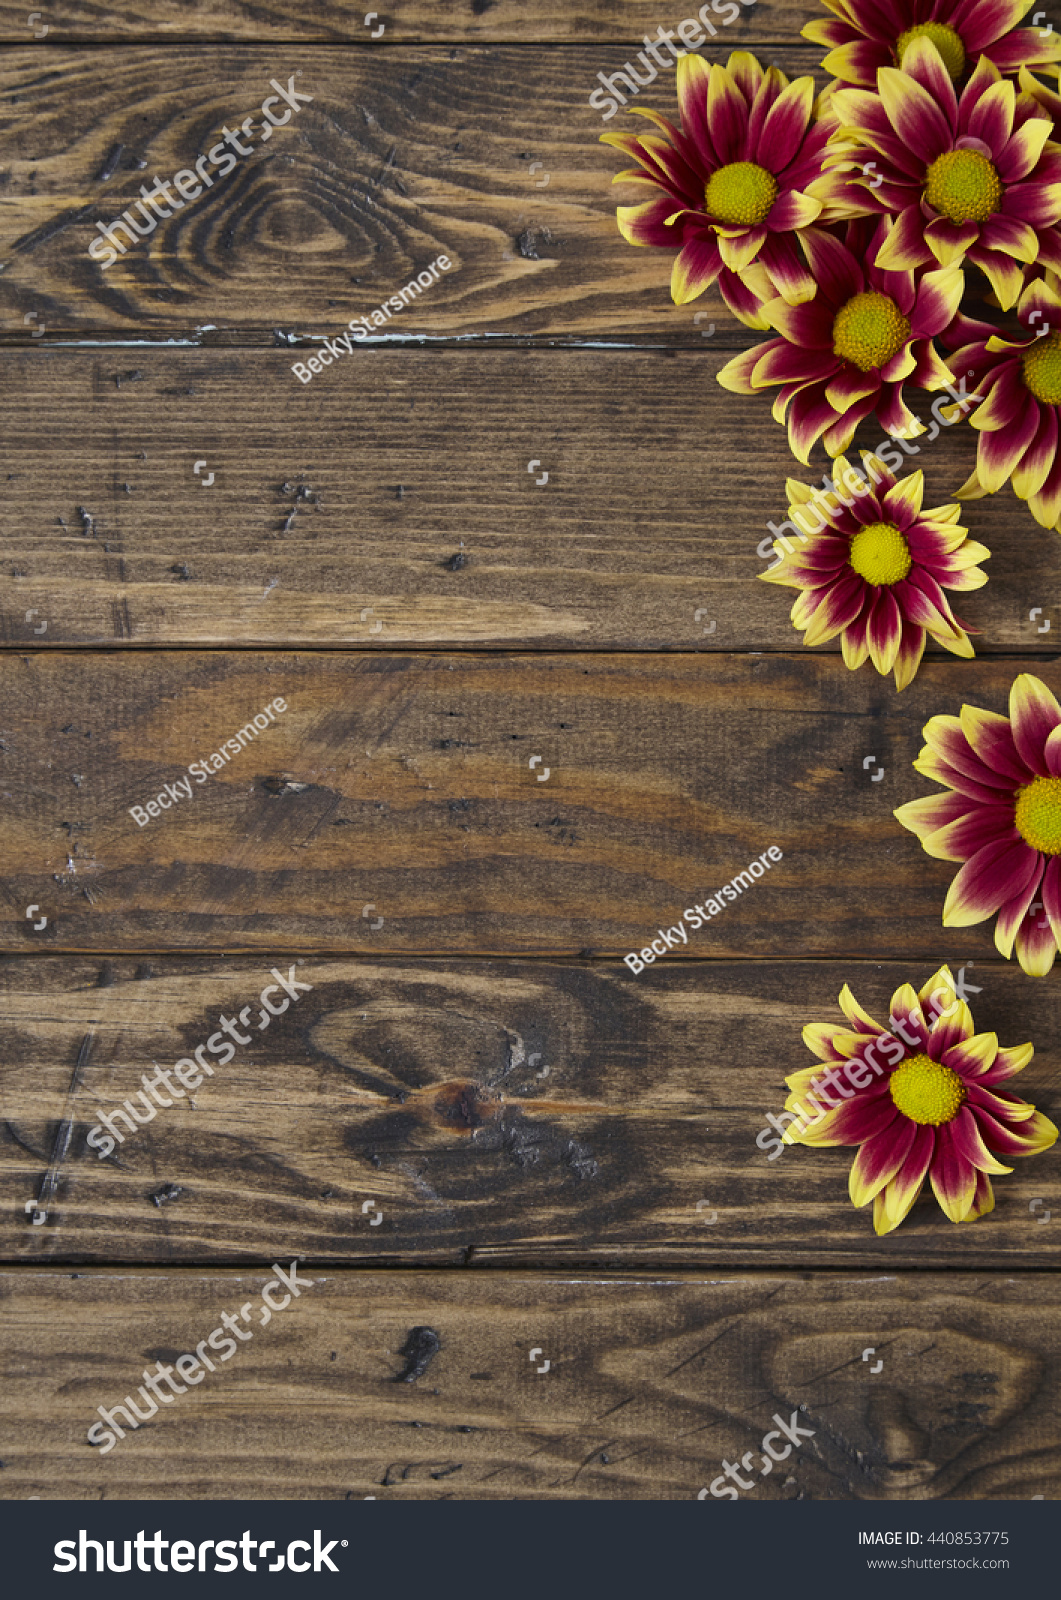 Royalty Free Floral Border